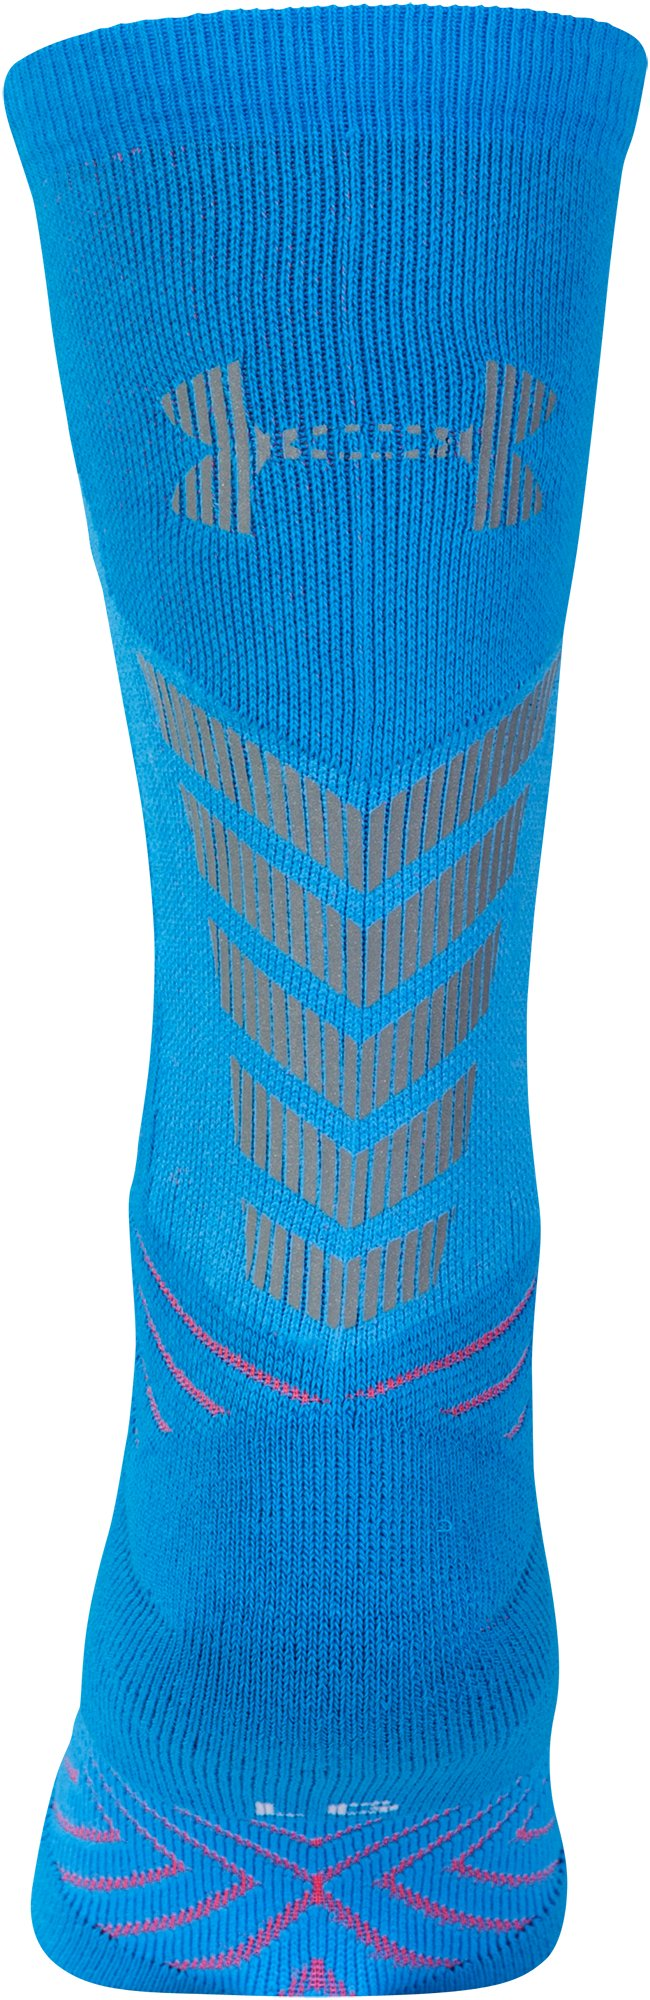 Men's UA Undeniable Reflective Crew Socks, ELECTRIC BLUE